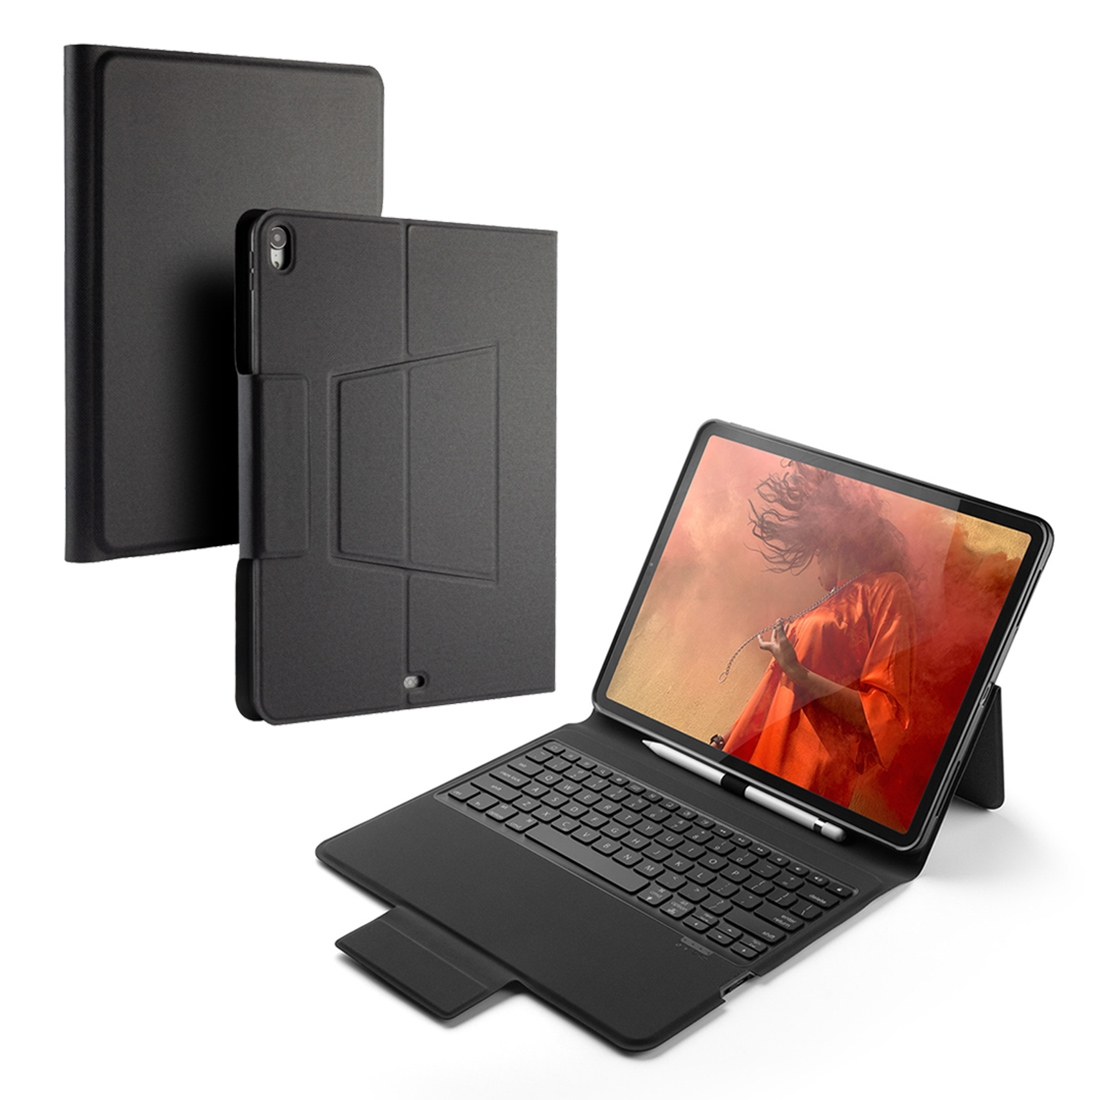 iPad Pro 12.9 Case With Keyboard & Backlite With Leather Flip Case for iPad Pro 12.9 (2018) (Black)